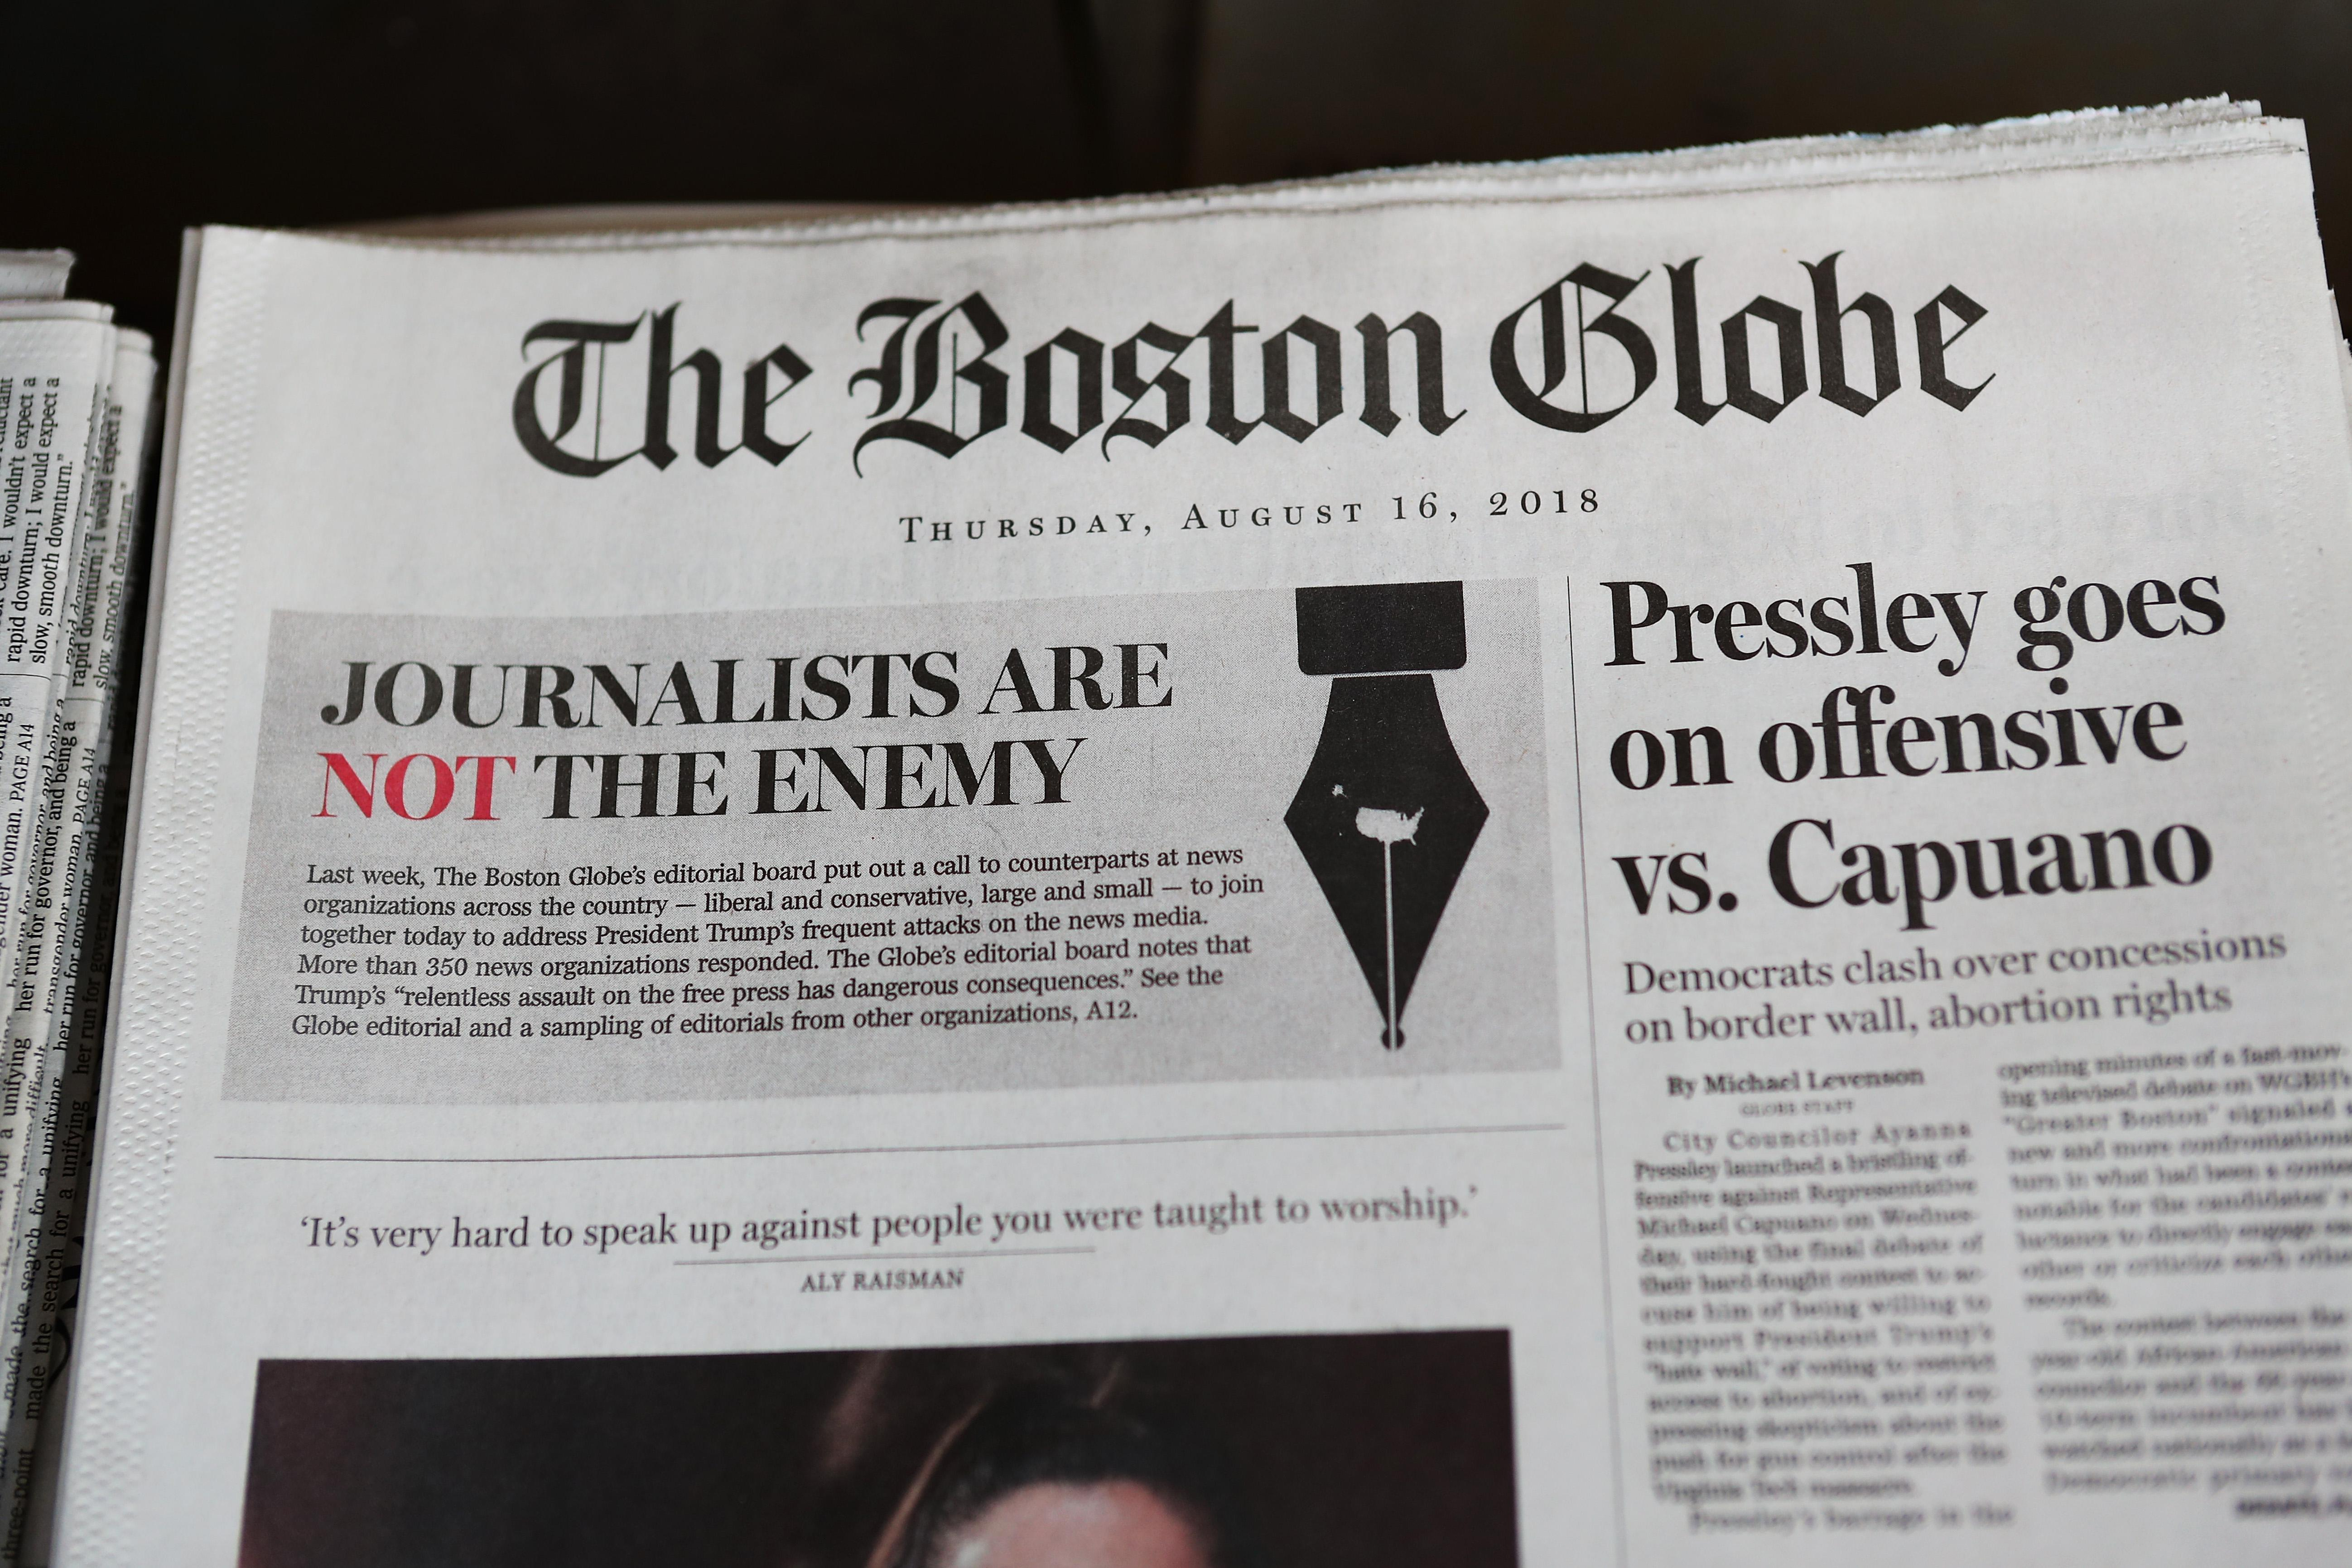 The front page of the Aug. 16 edition of the Boston Globe.